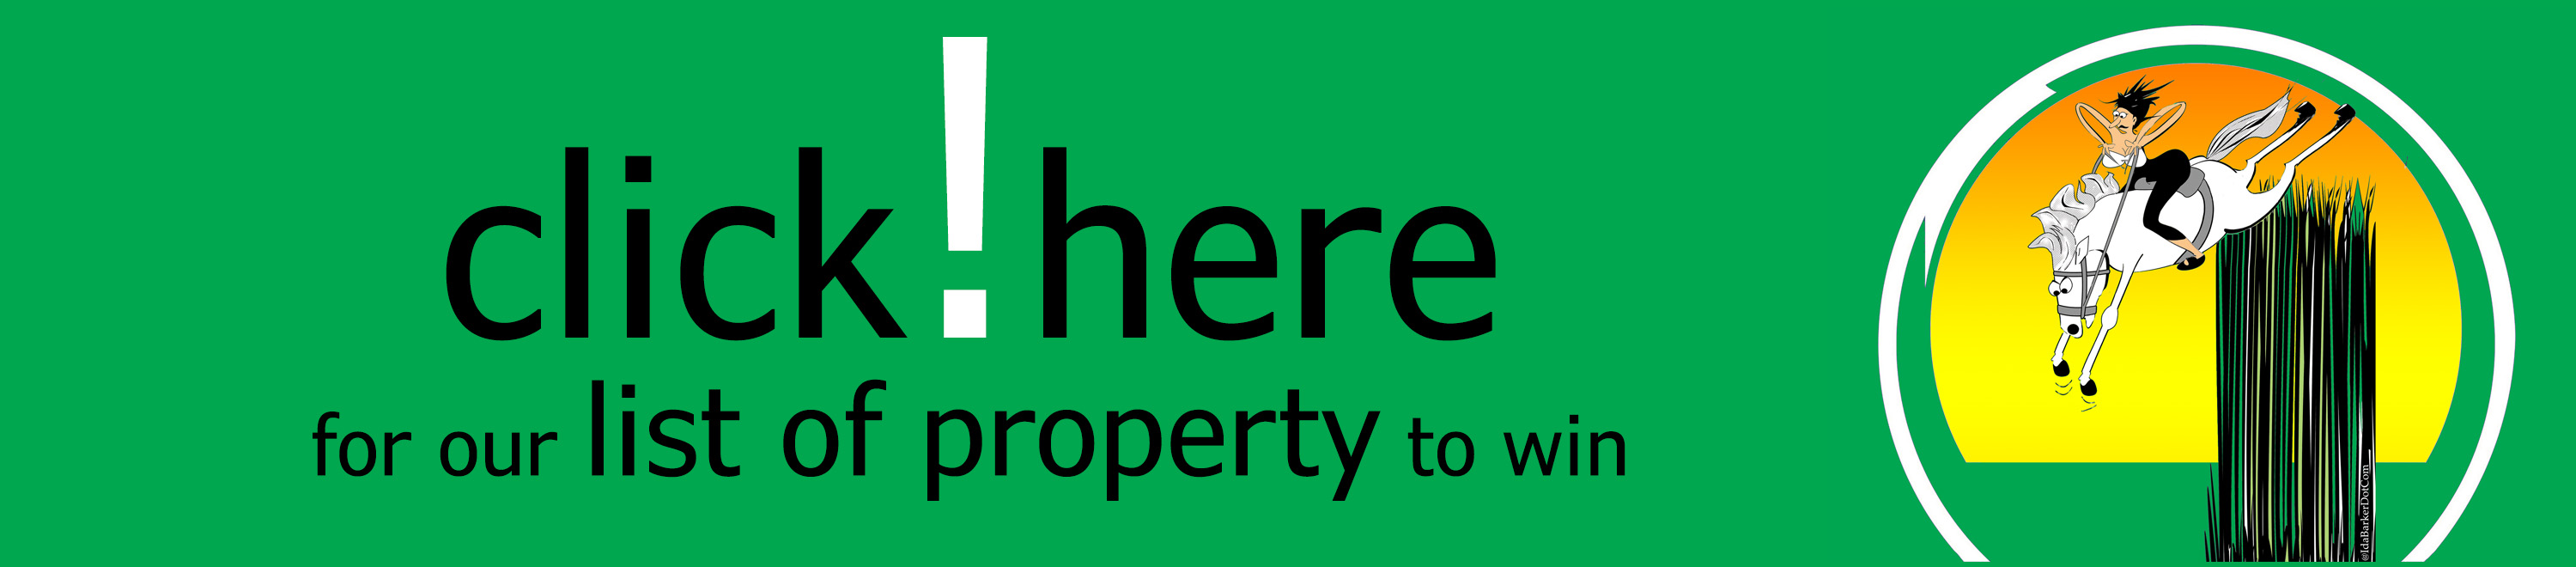 "Colourful banner, stating ""click here for our list of property to win"" raffleproperty.net"